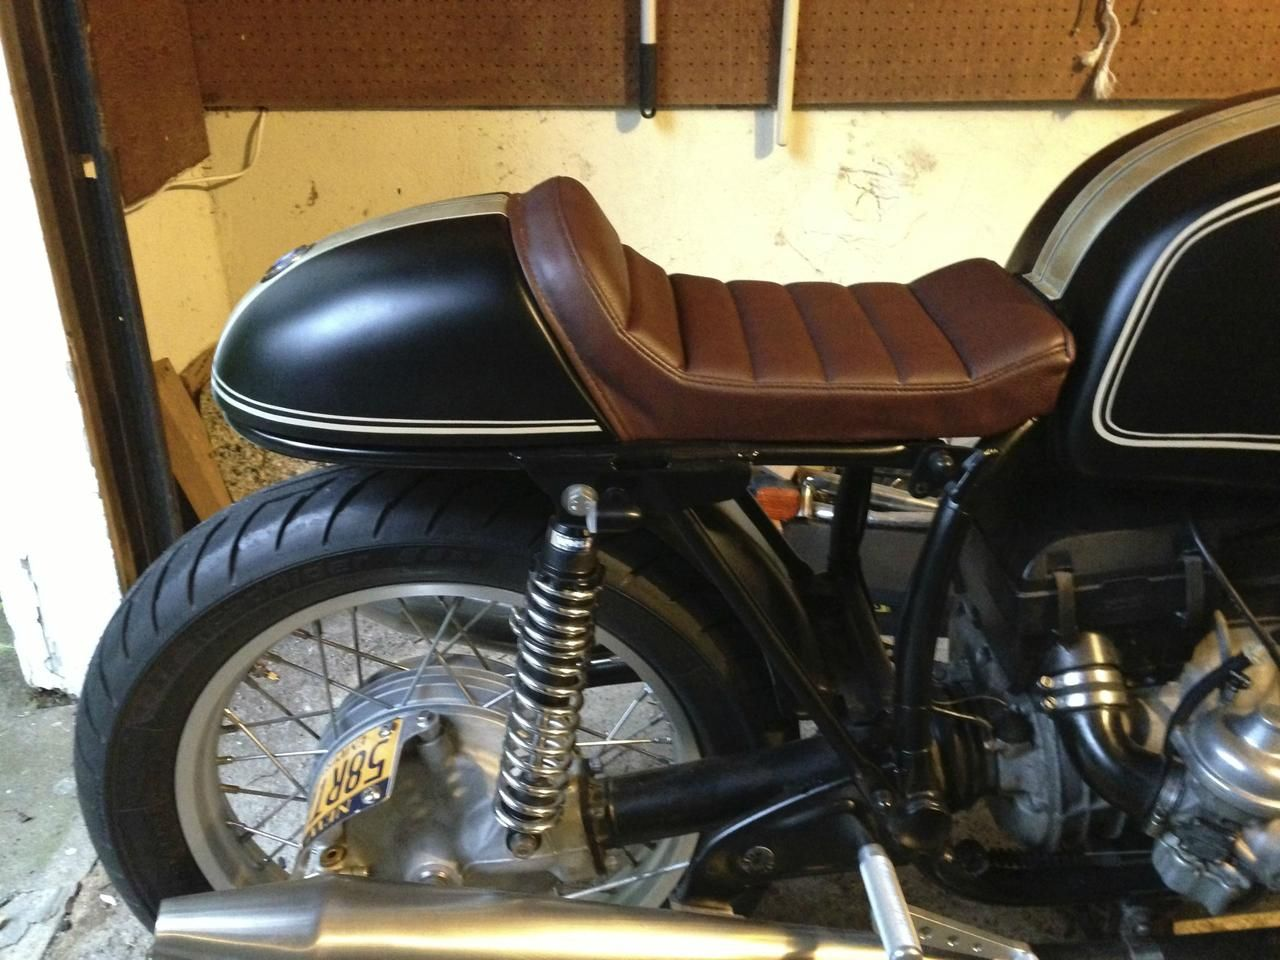 Click This Image To Show The Full Size Version Cafe Racer SeatCafe